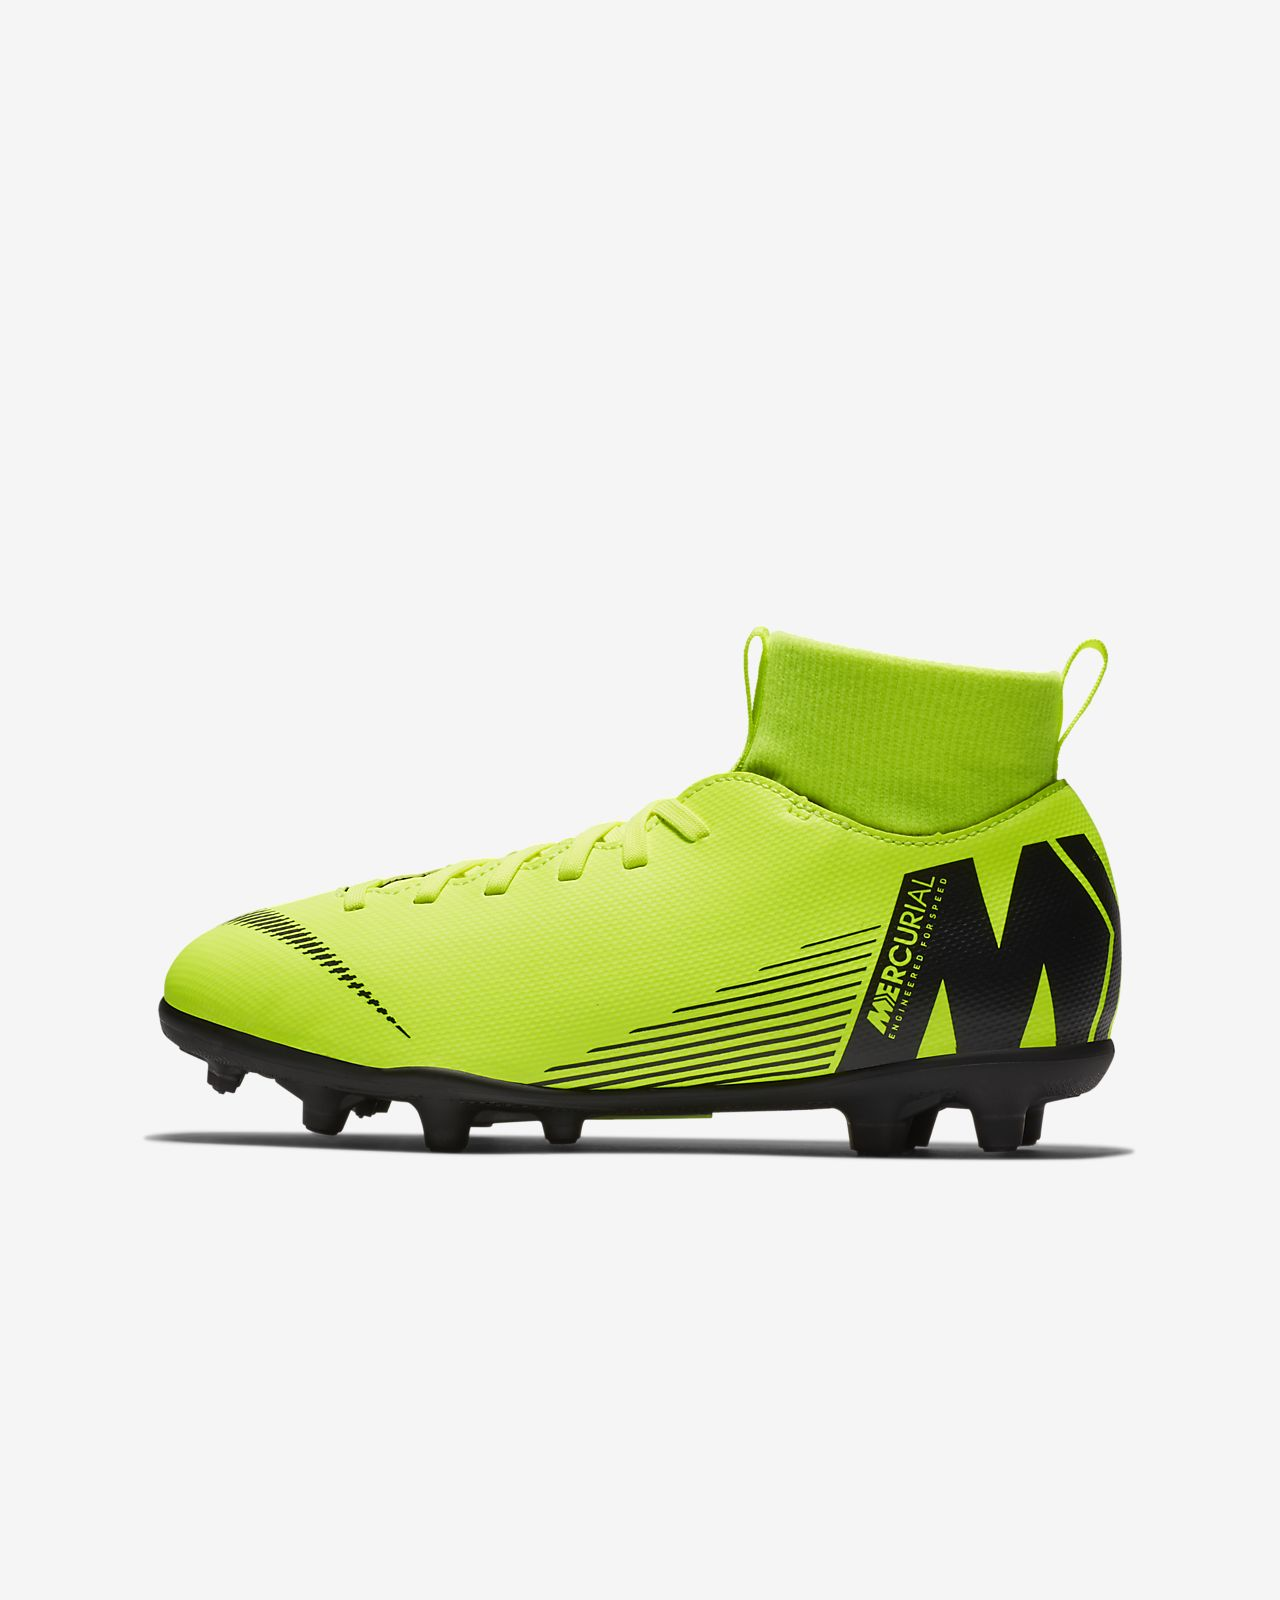 Nike Jr. Mercurial Superfly VI Club Botas de fútbol para múltiples  superficies - Niño  ba9e646d9bd61